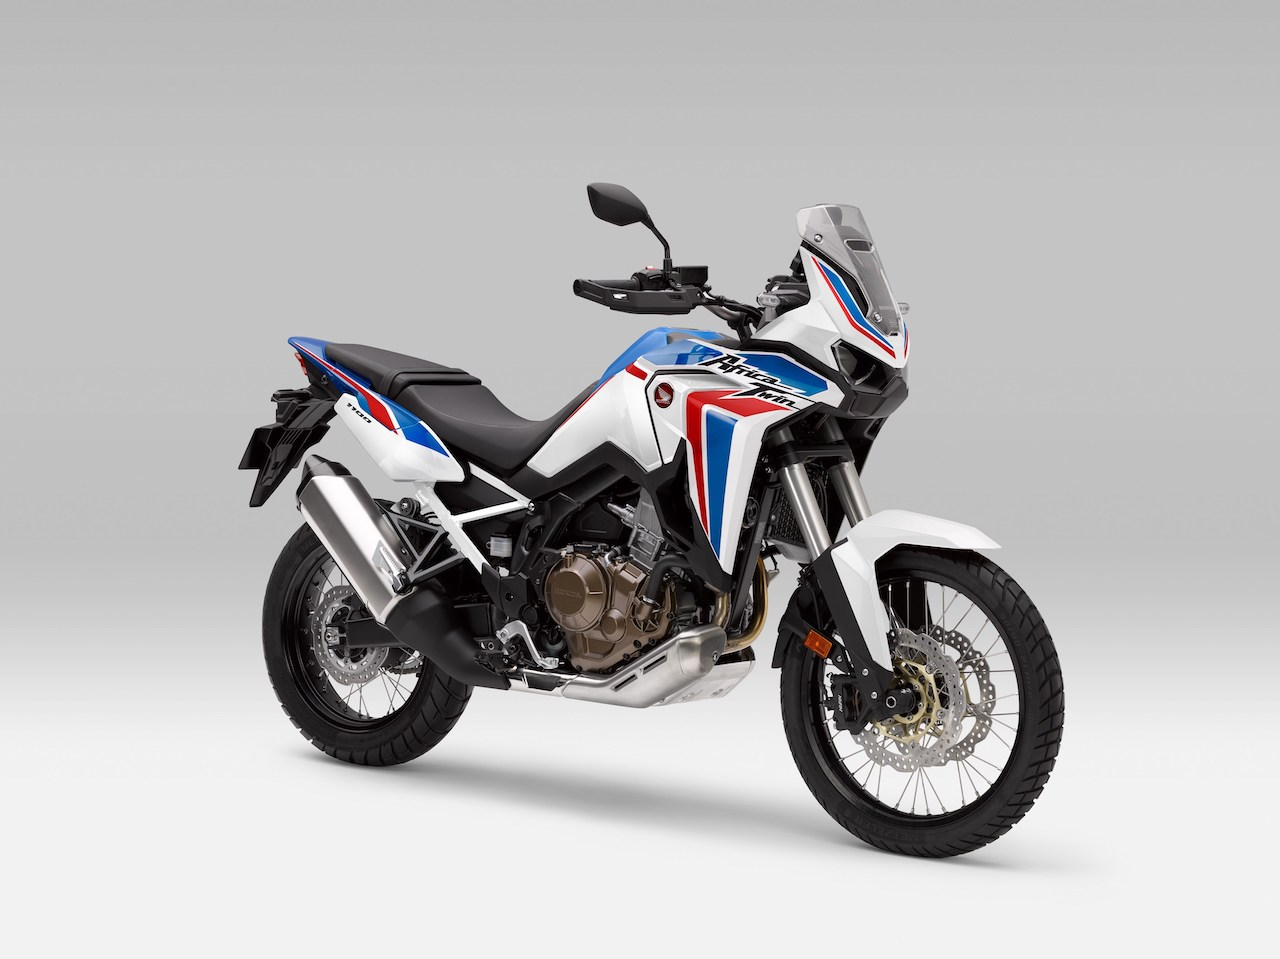 2021 honda africa twin gets new paint option, coming soon